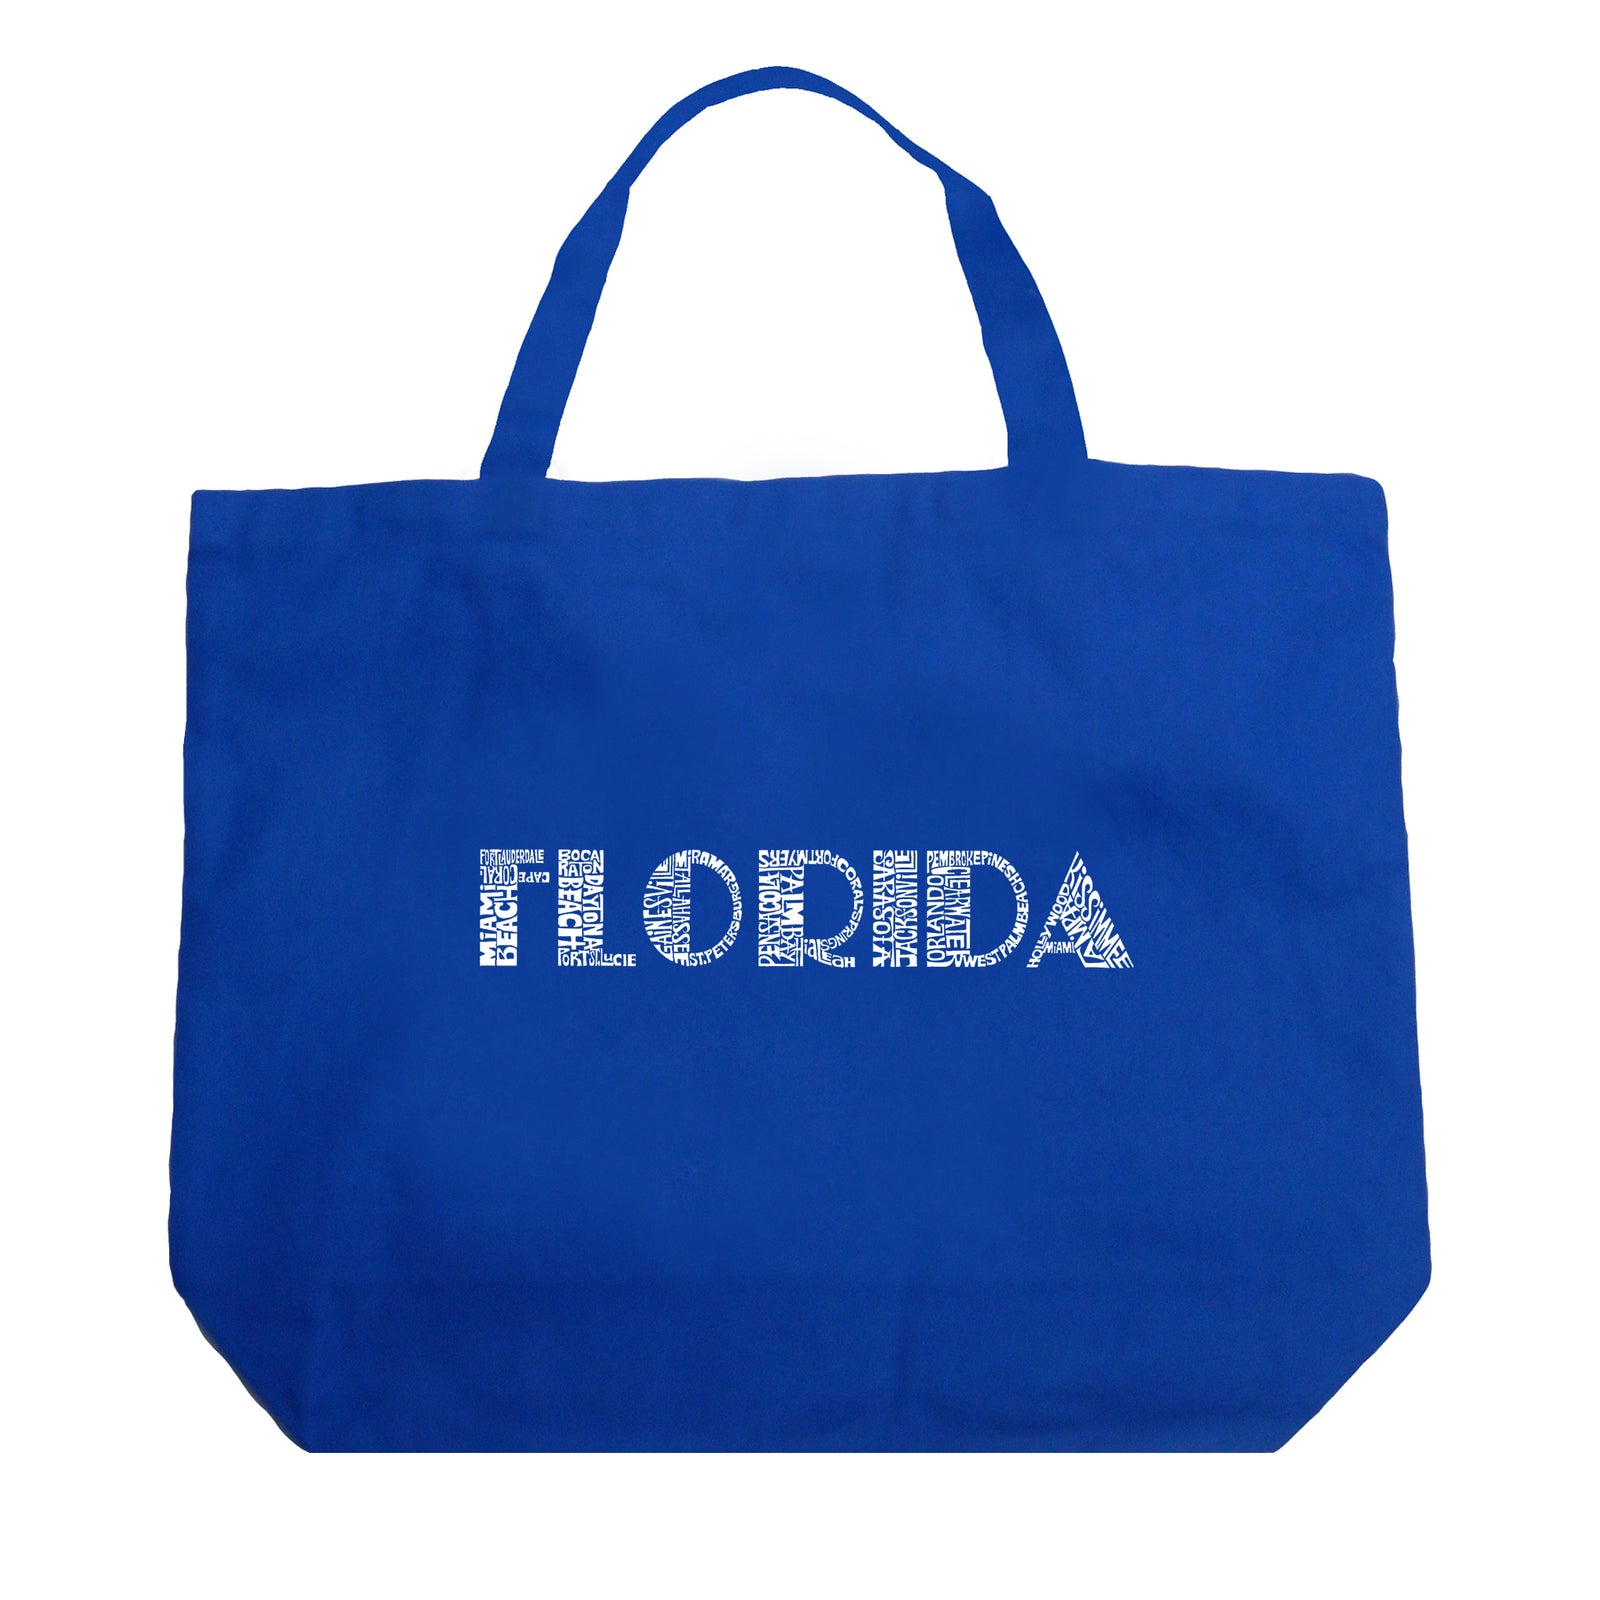 Large Tote Bag - POPULAR CITIES IN FLORIDA